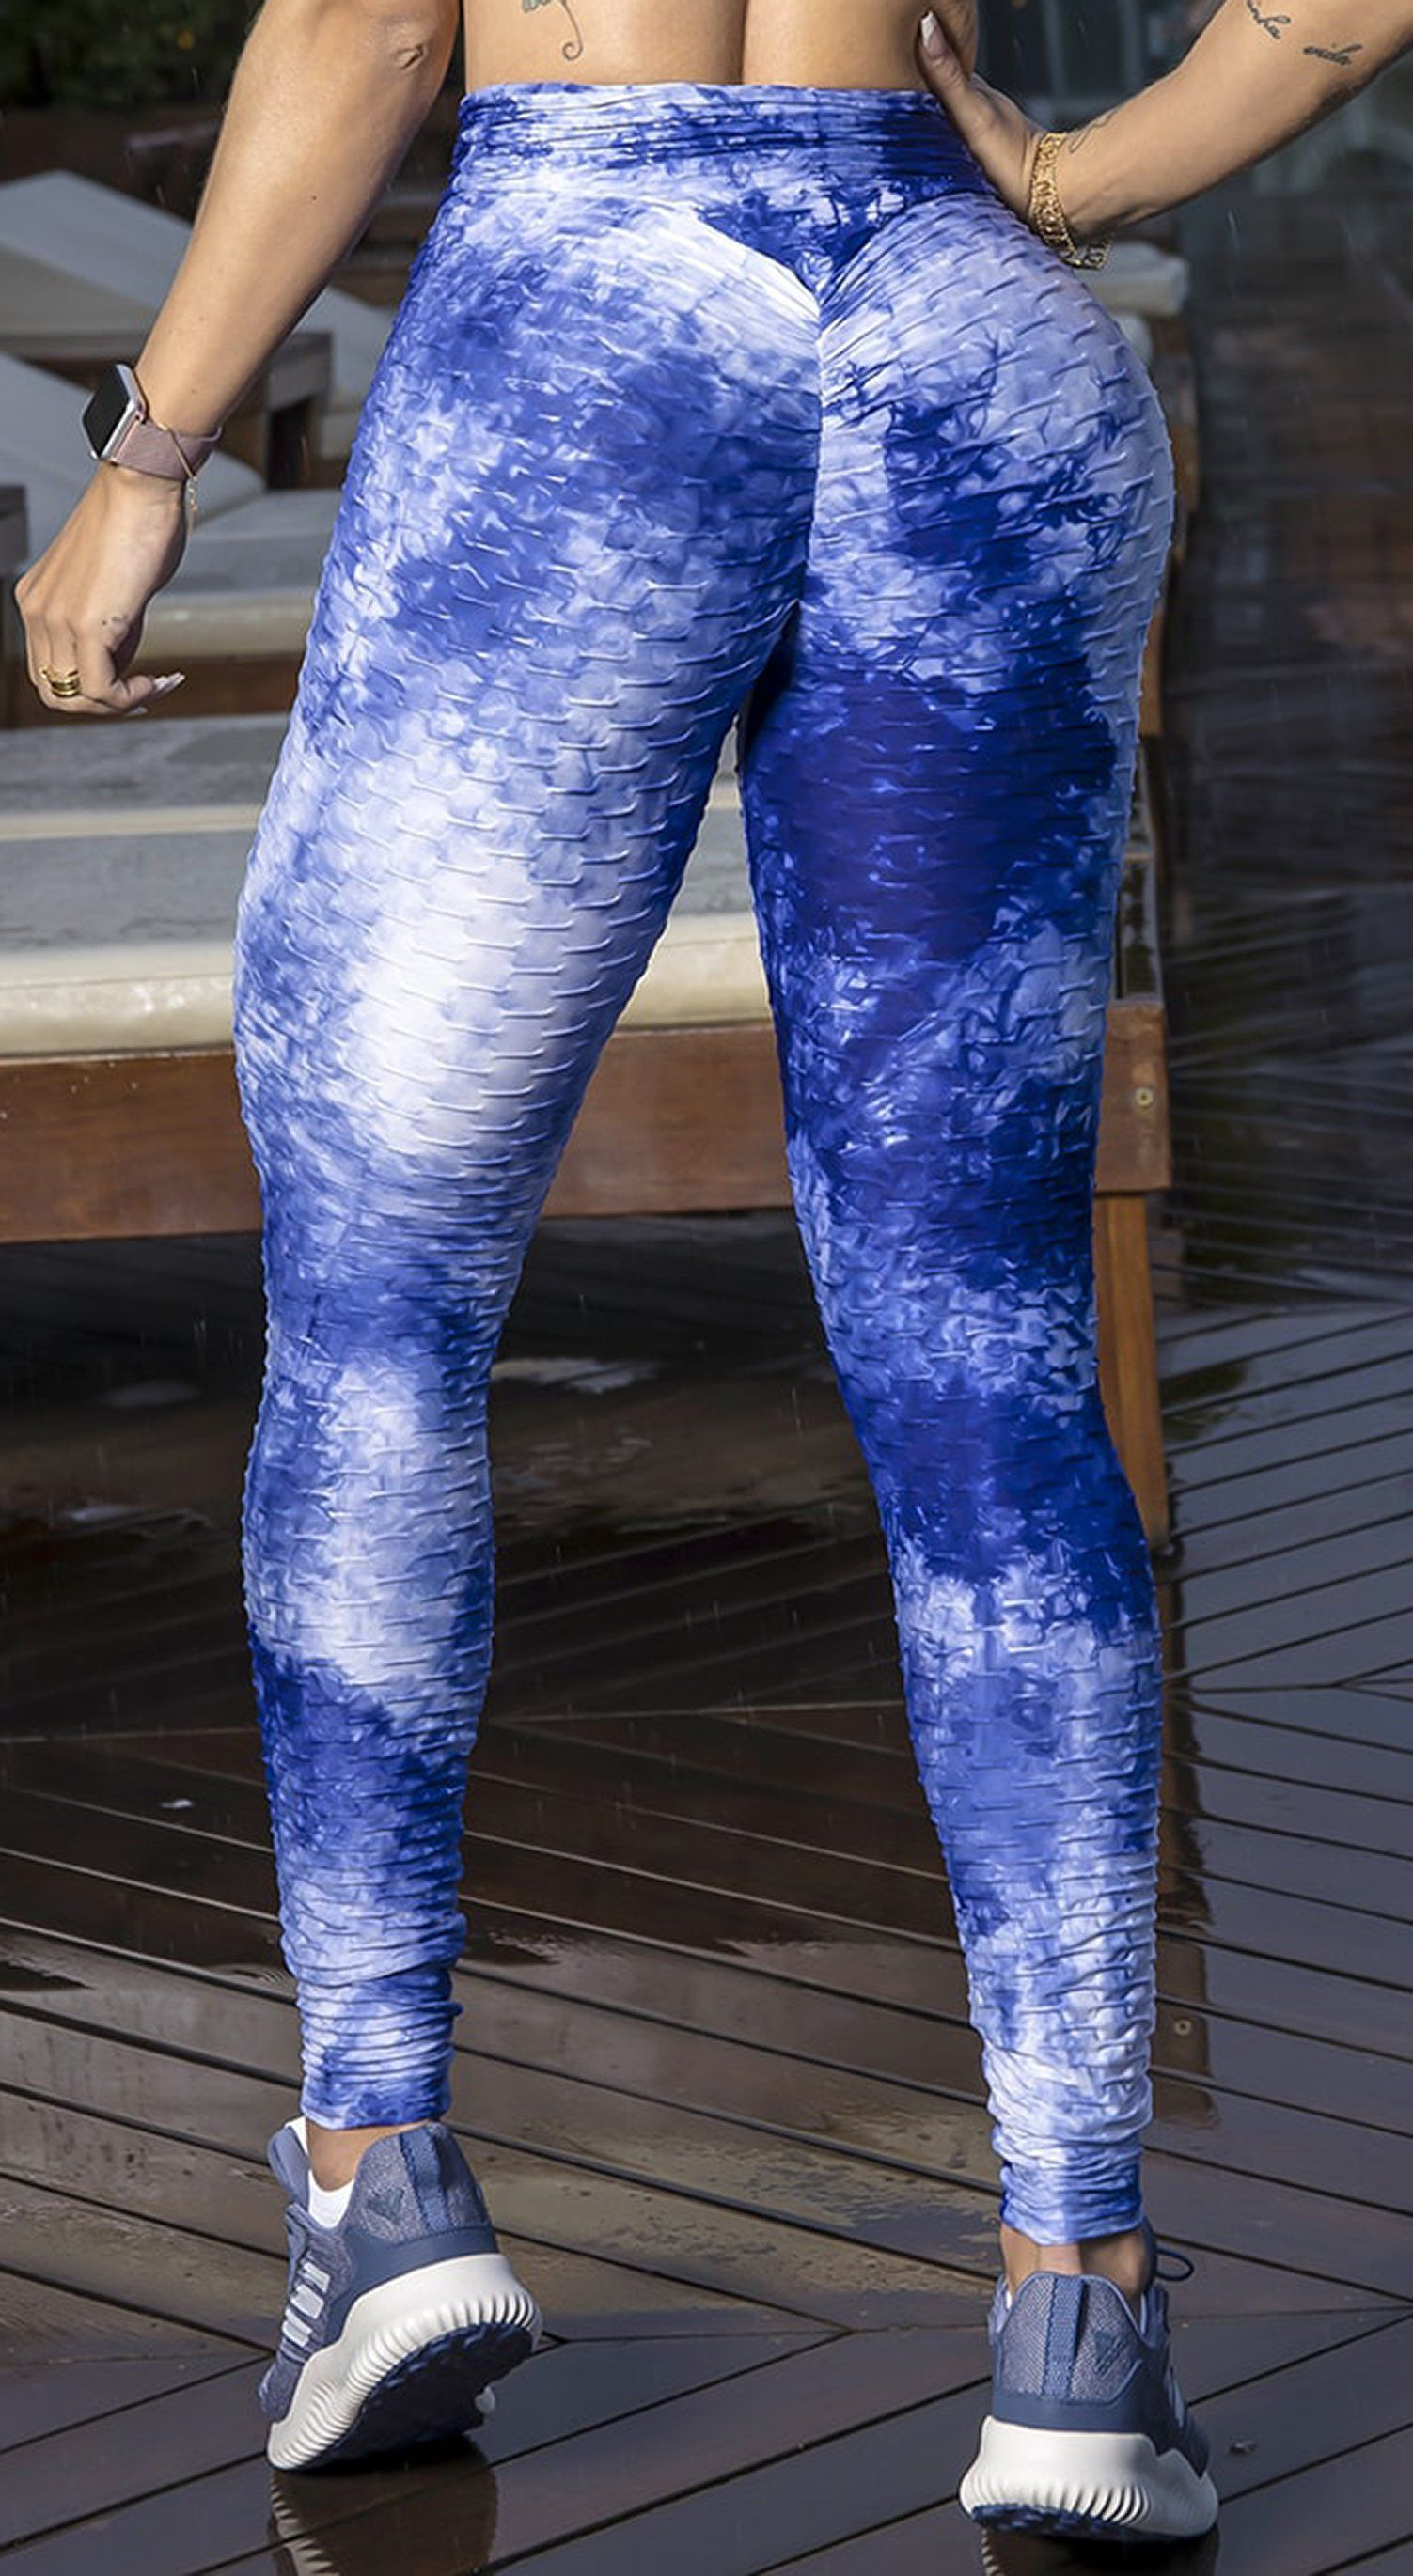 Brazilian Legging - High Waist Anti Cellulite Textured Scrunch Booty Tie Dye Blue & White